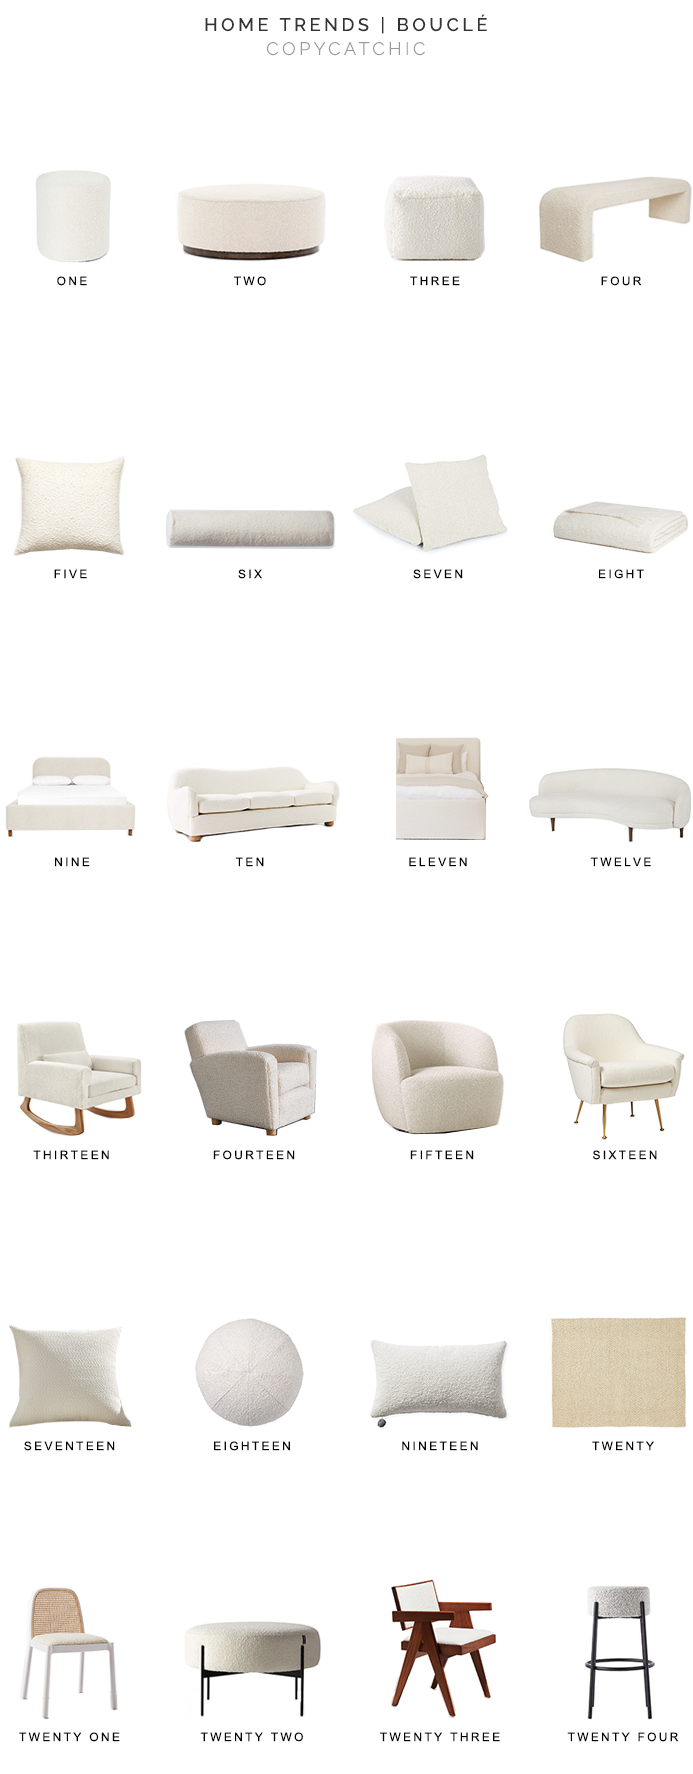 boucle furniture, boucle accessories, boucle decor, copycatchic luxe living for less, budget home decor and design, daily finds, home trends, sales, budget travel and room redos